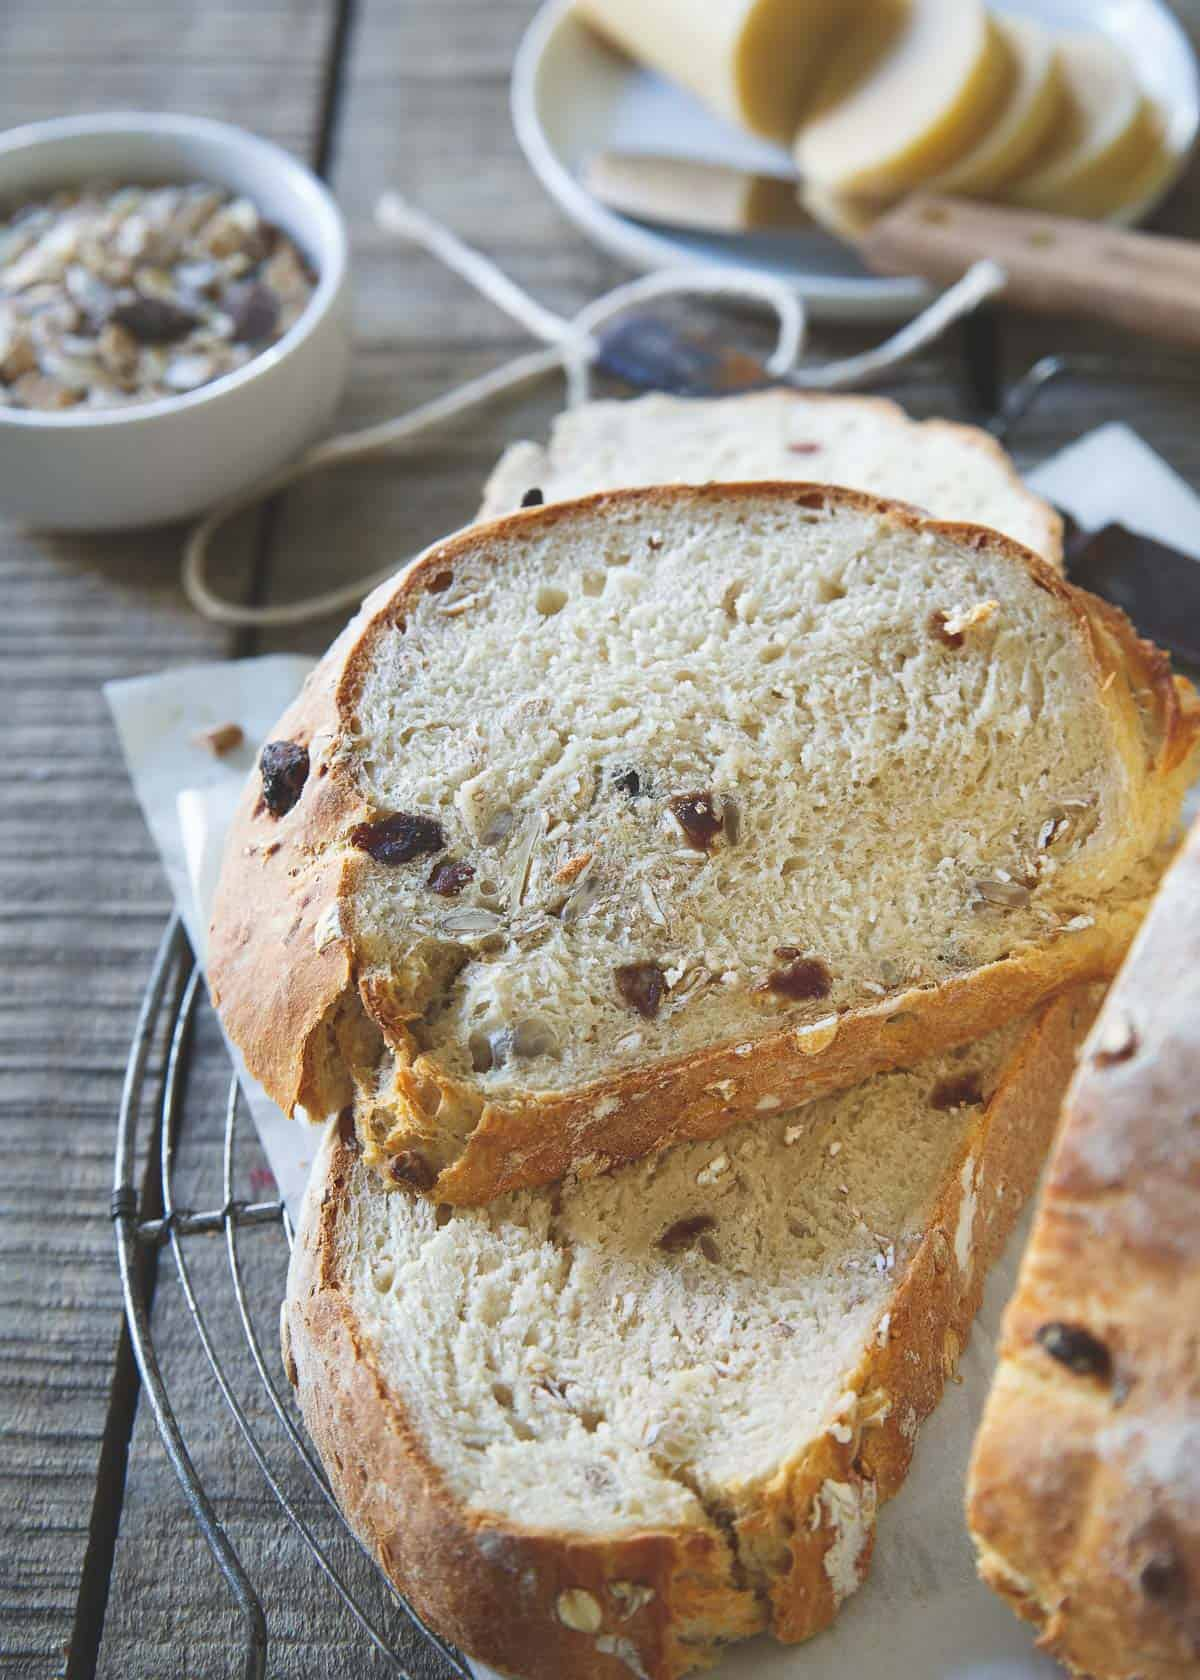 This hearty, part whole wheat muesli bread can't be beat straight out of the oven.